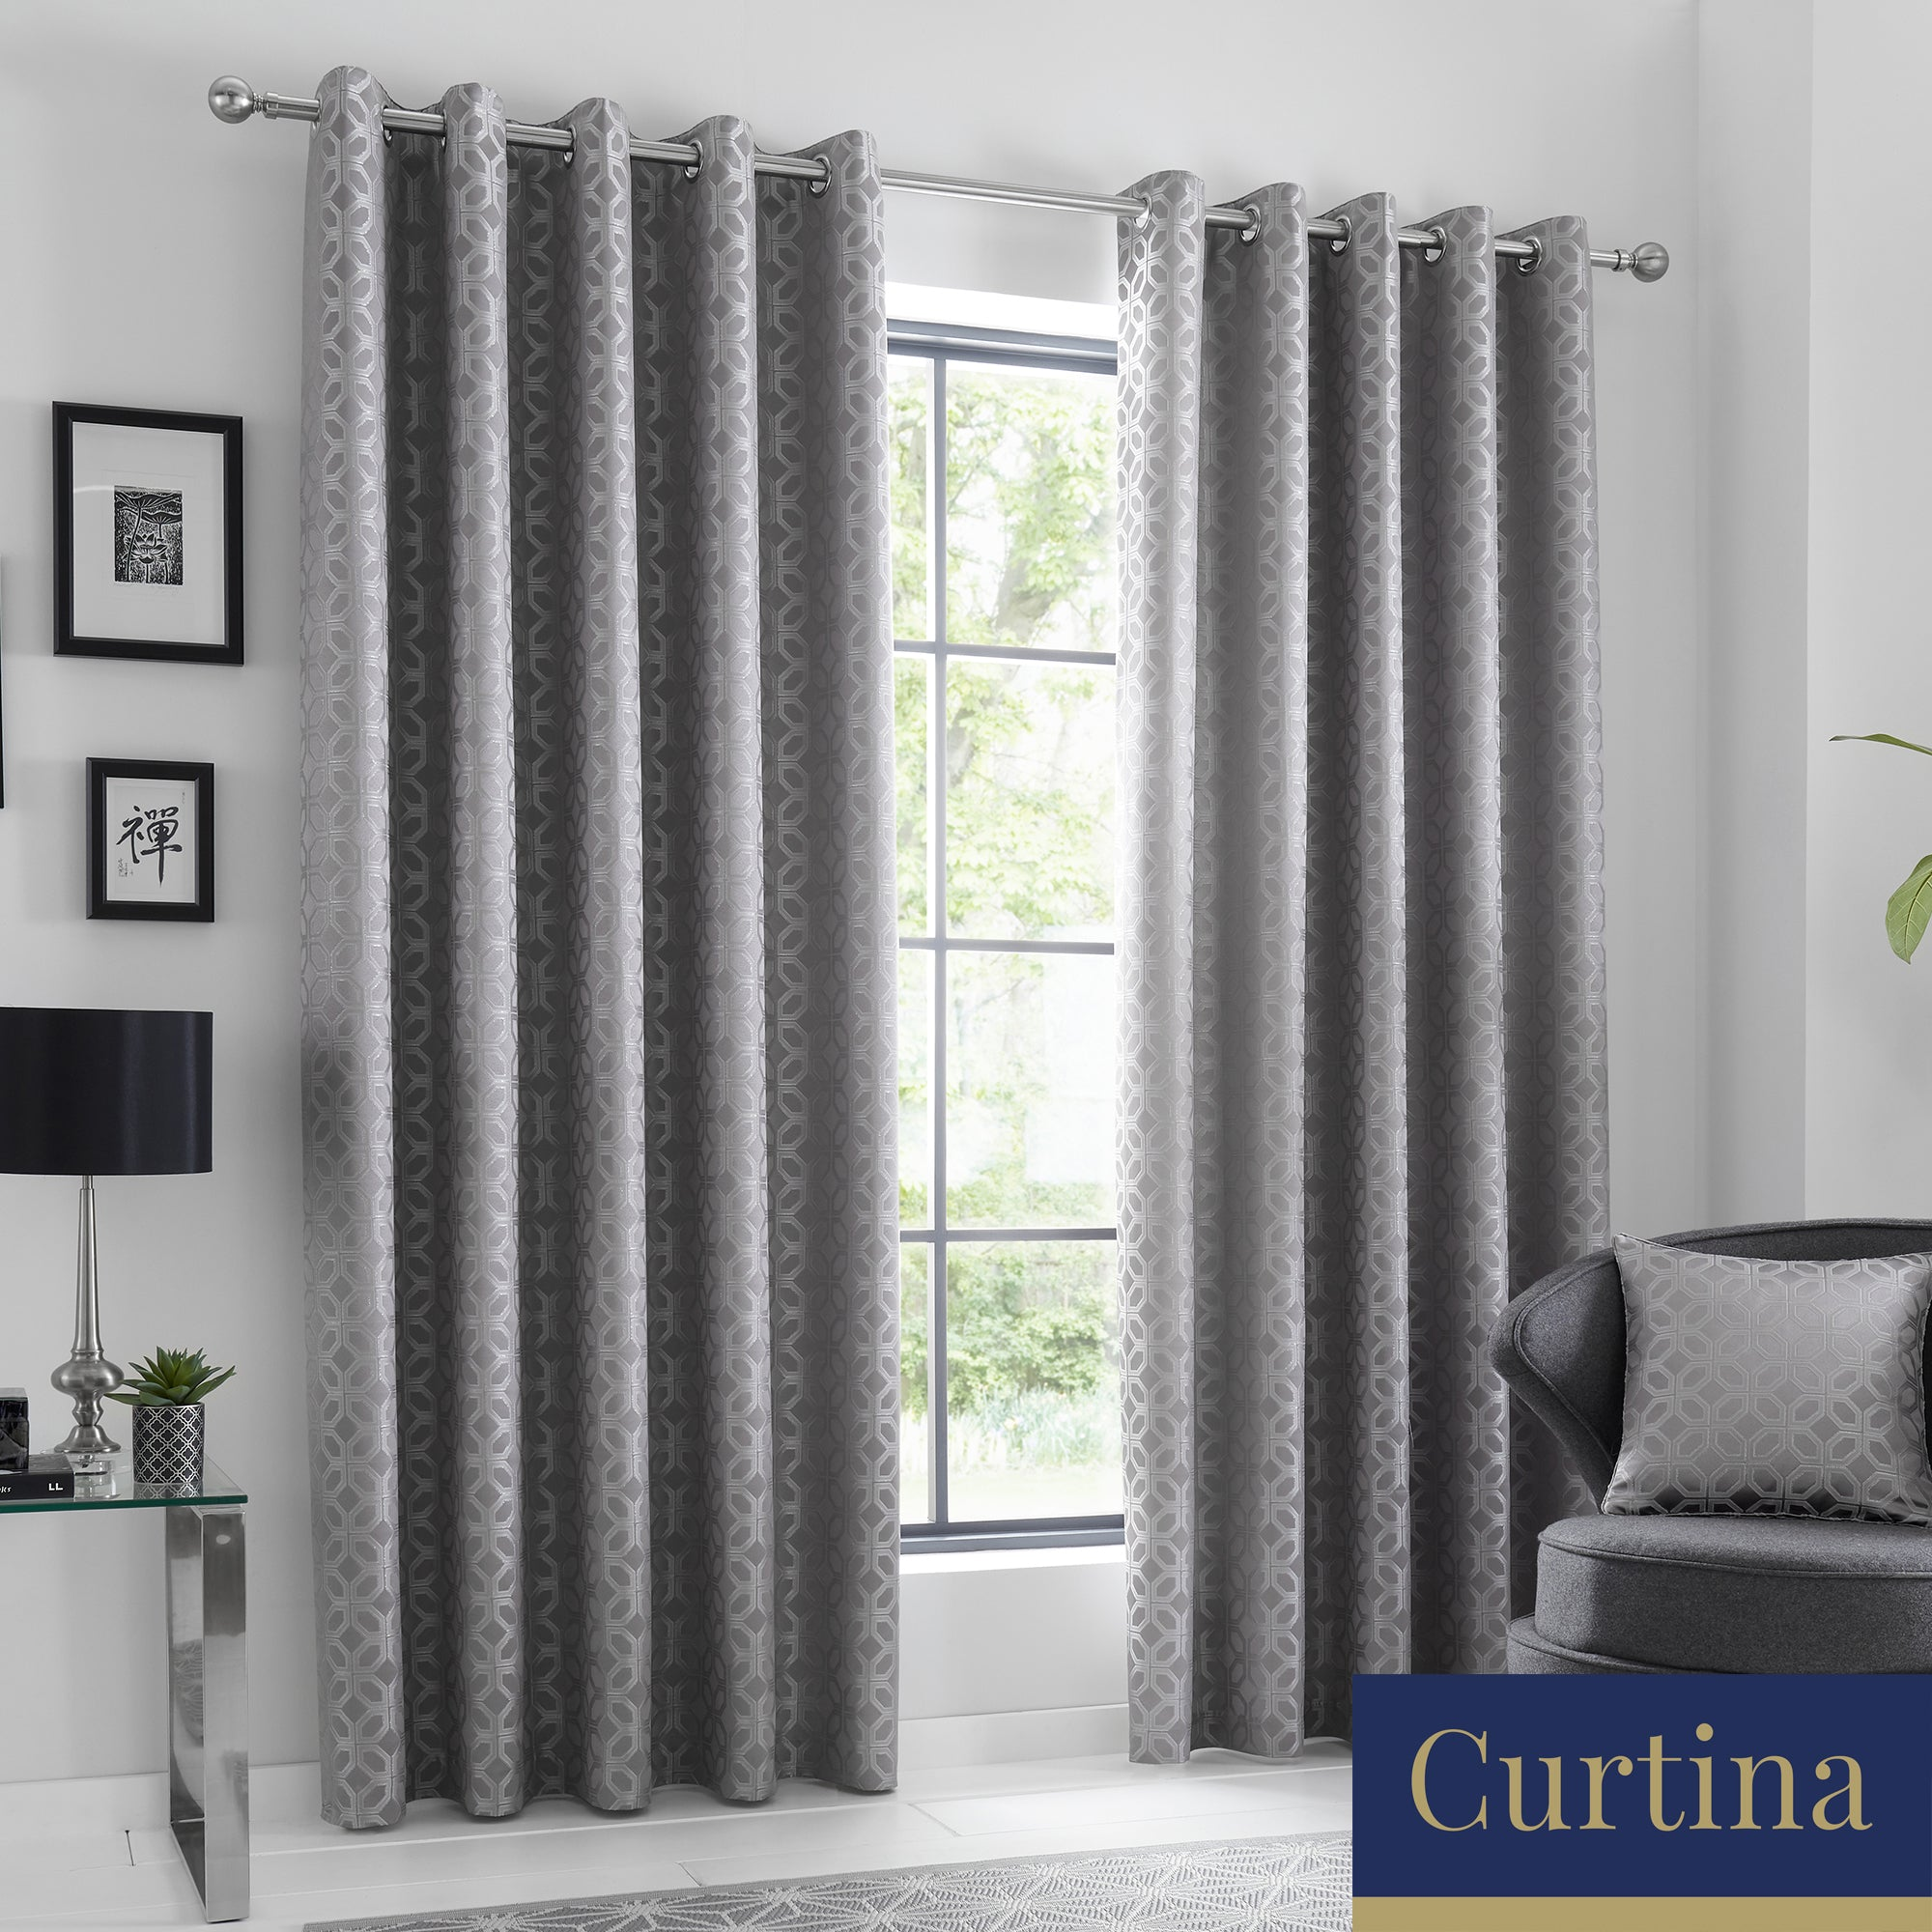 Oriental Squares - Geometric Metallic Jacquard Eyelet Curtains in Silver - By Curtina